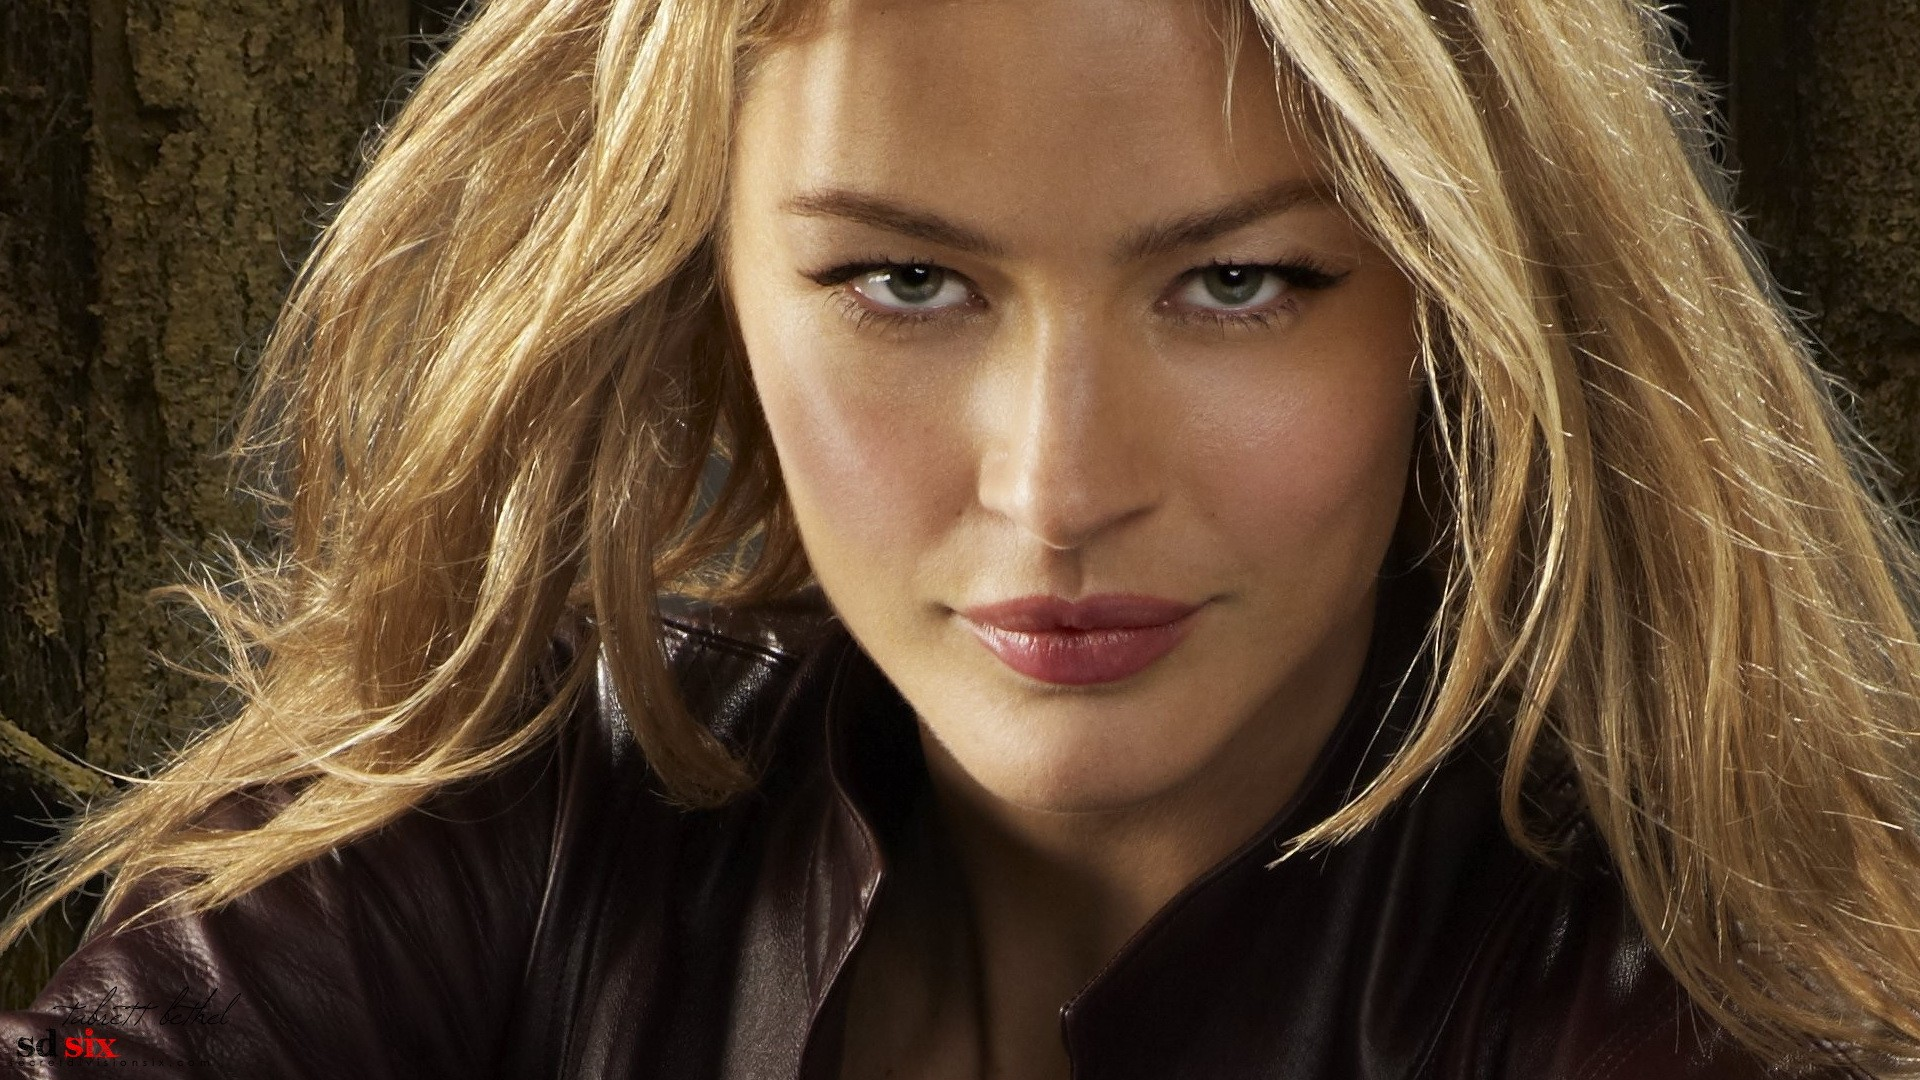 Tabrett Bethell Backgrounds, Compatible - PC, Mobile, Gadgets  1920x1080 px